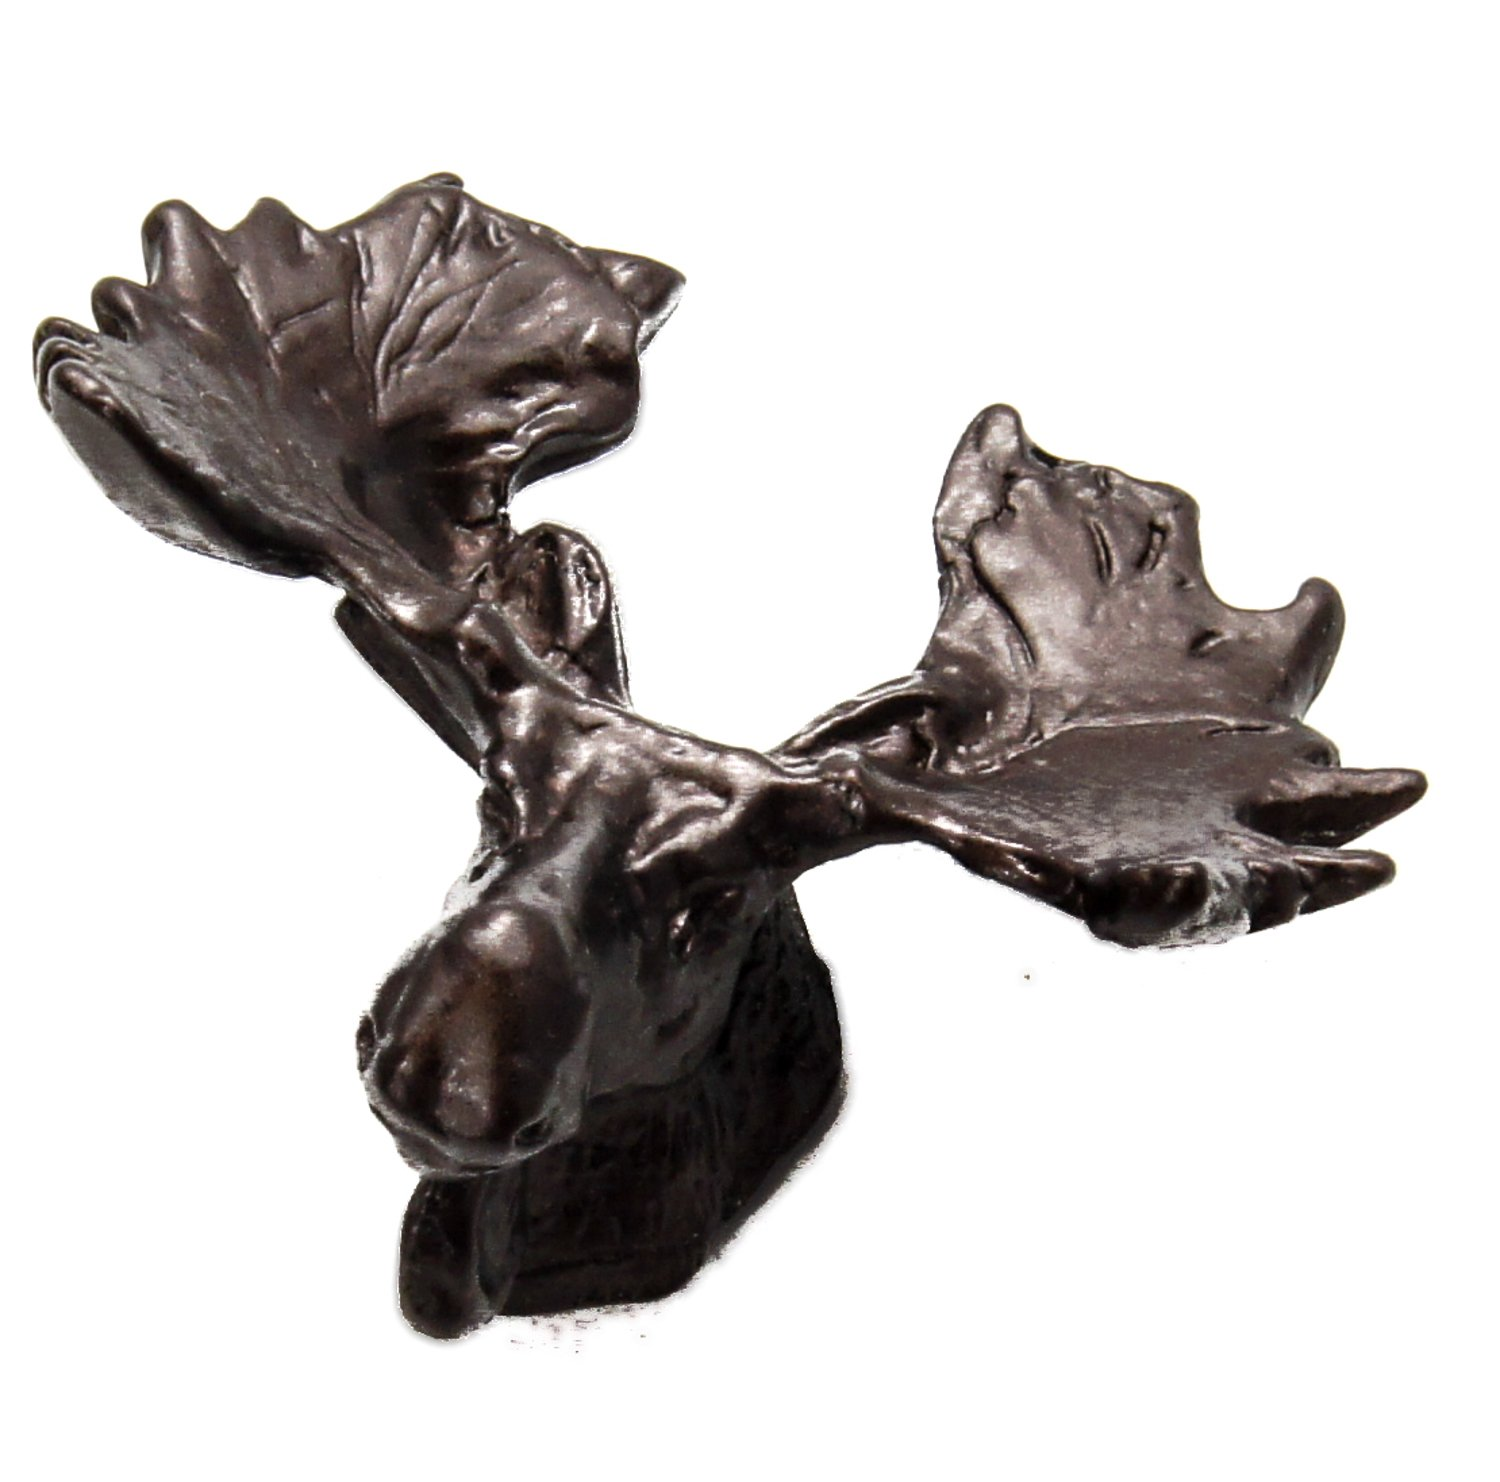 Carpe Diem Hardware 2254-12 Lodge Collection Moose Small Knob, Bronze by Carpe Diem Hardware